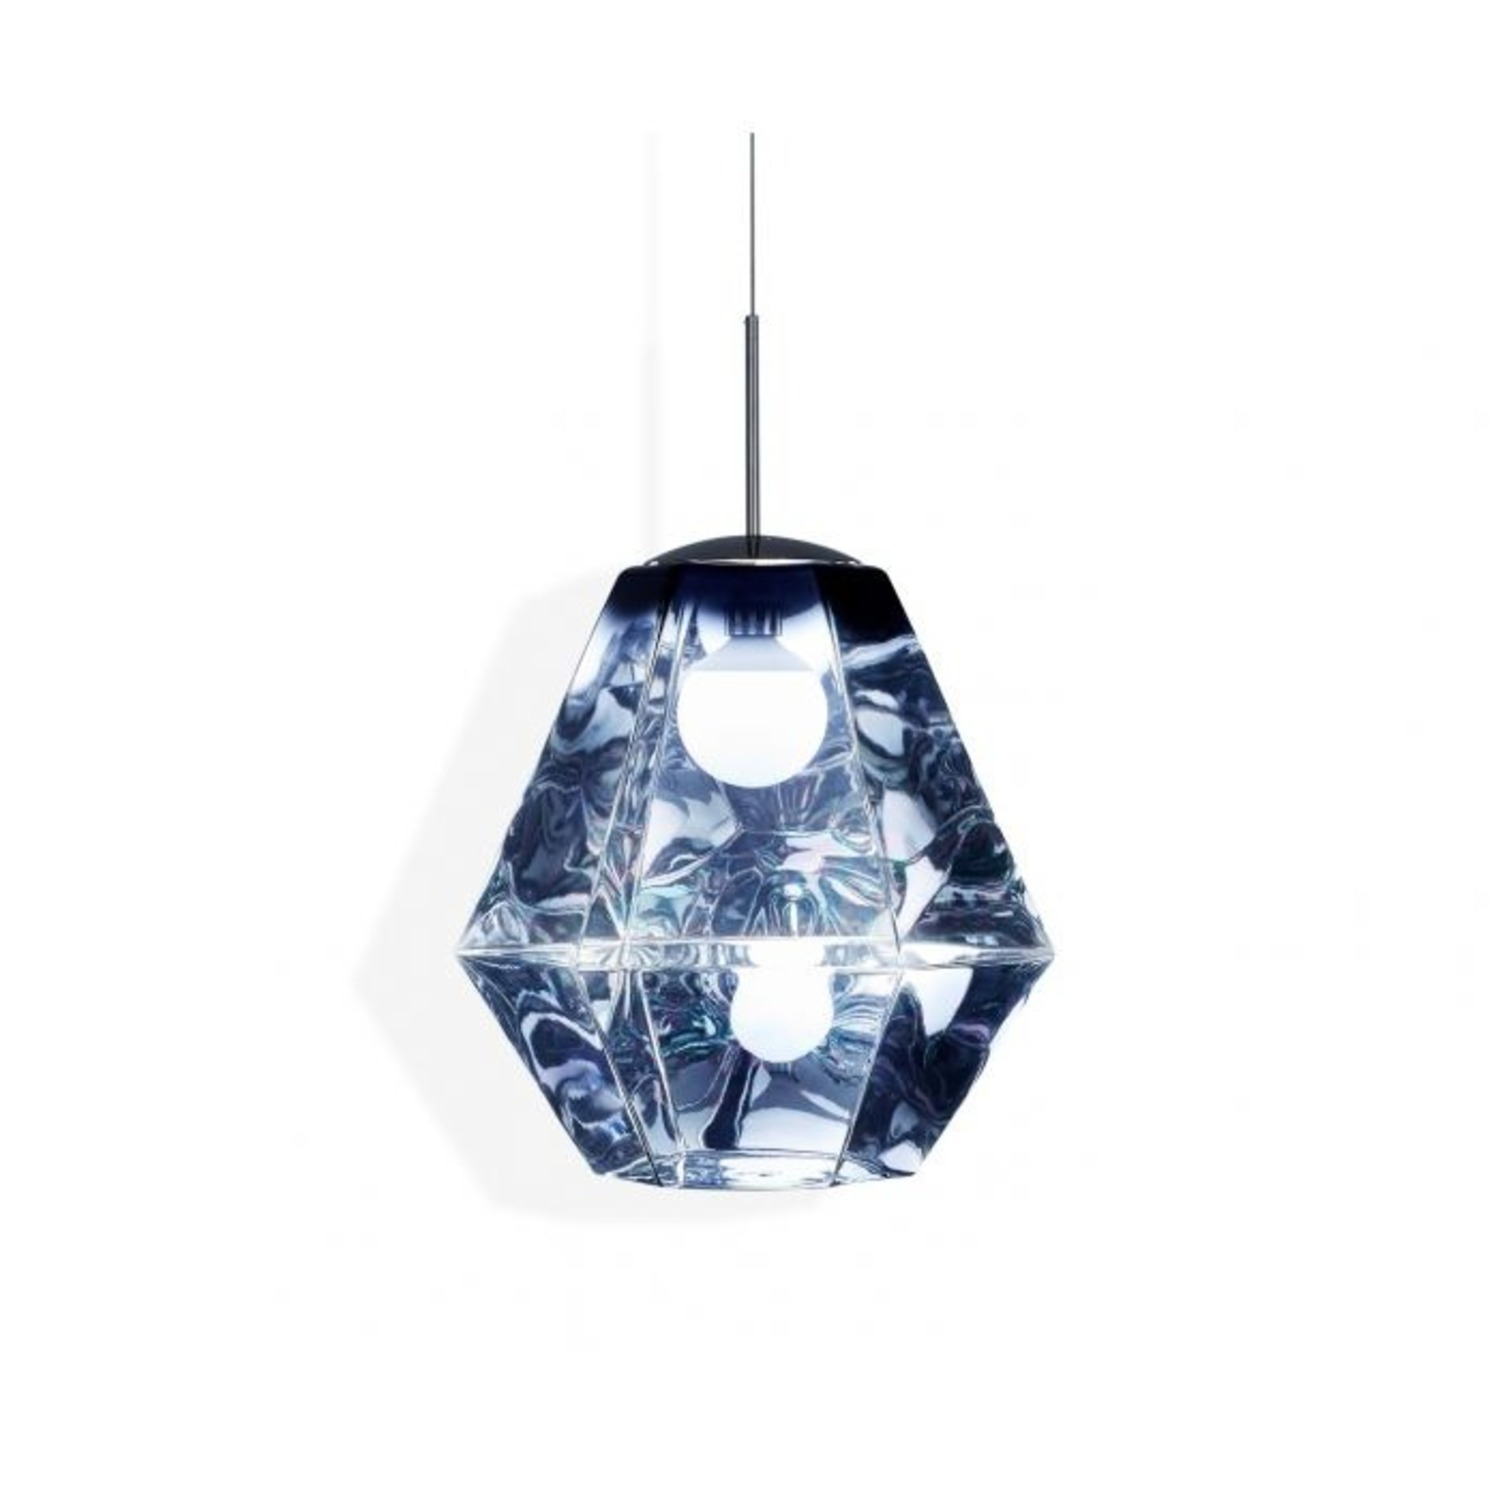 Tom Dixon Cut Tall Pendant Light - image-6